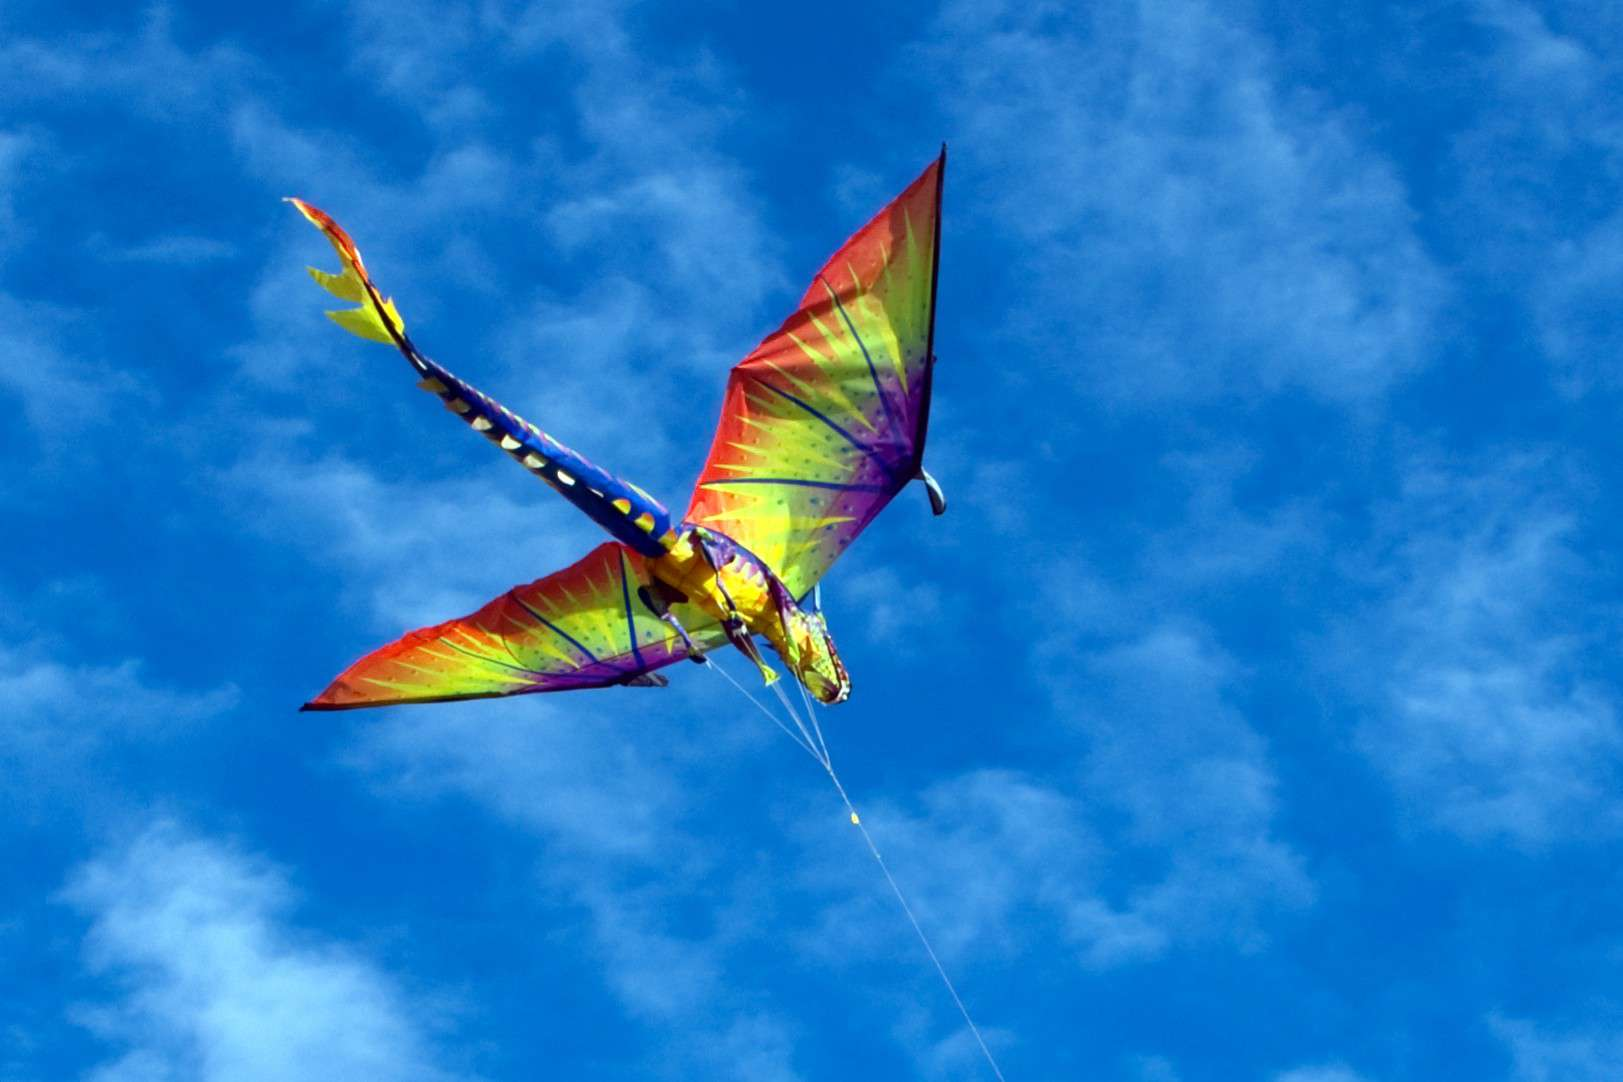 An intricate kite in the shape of a dragon